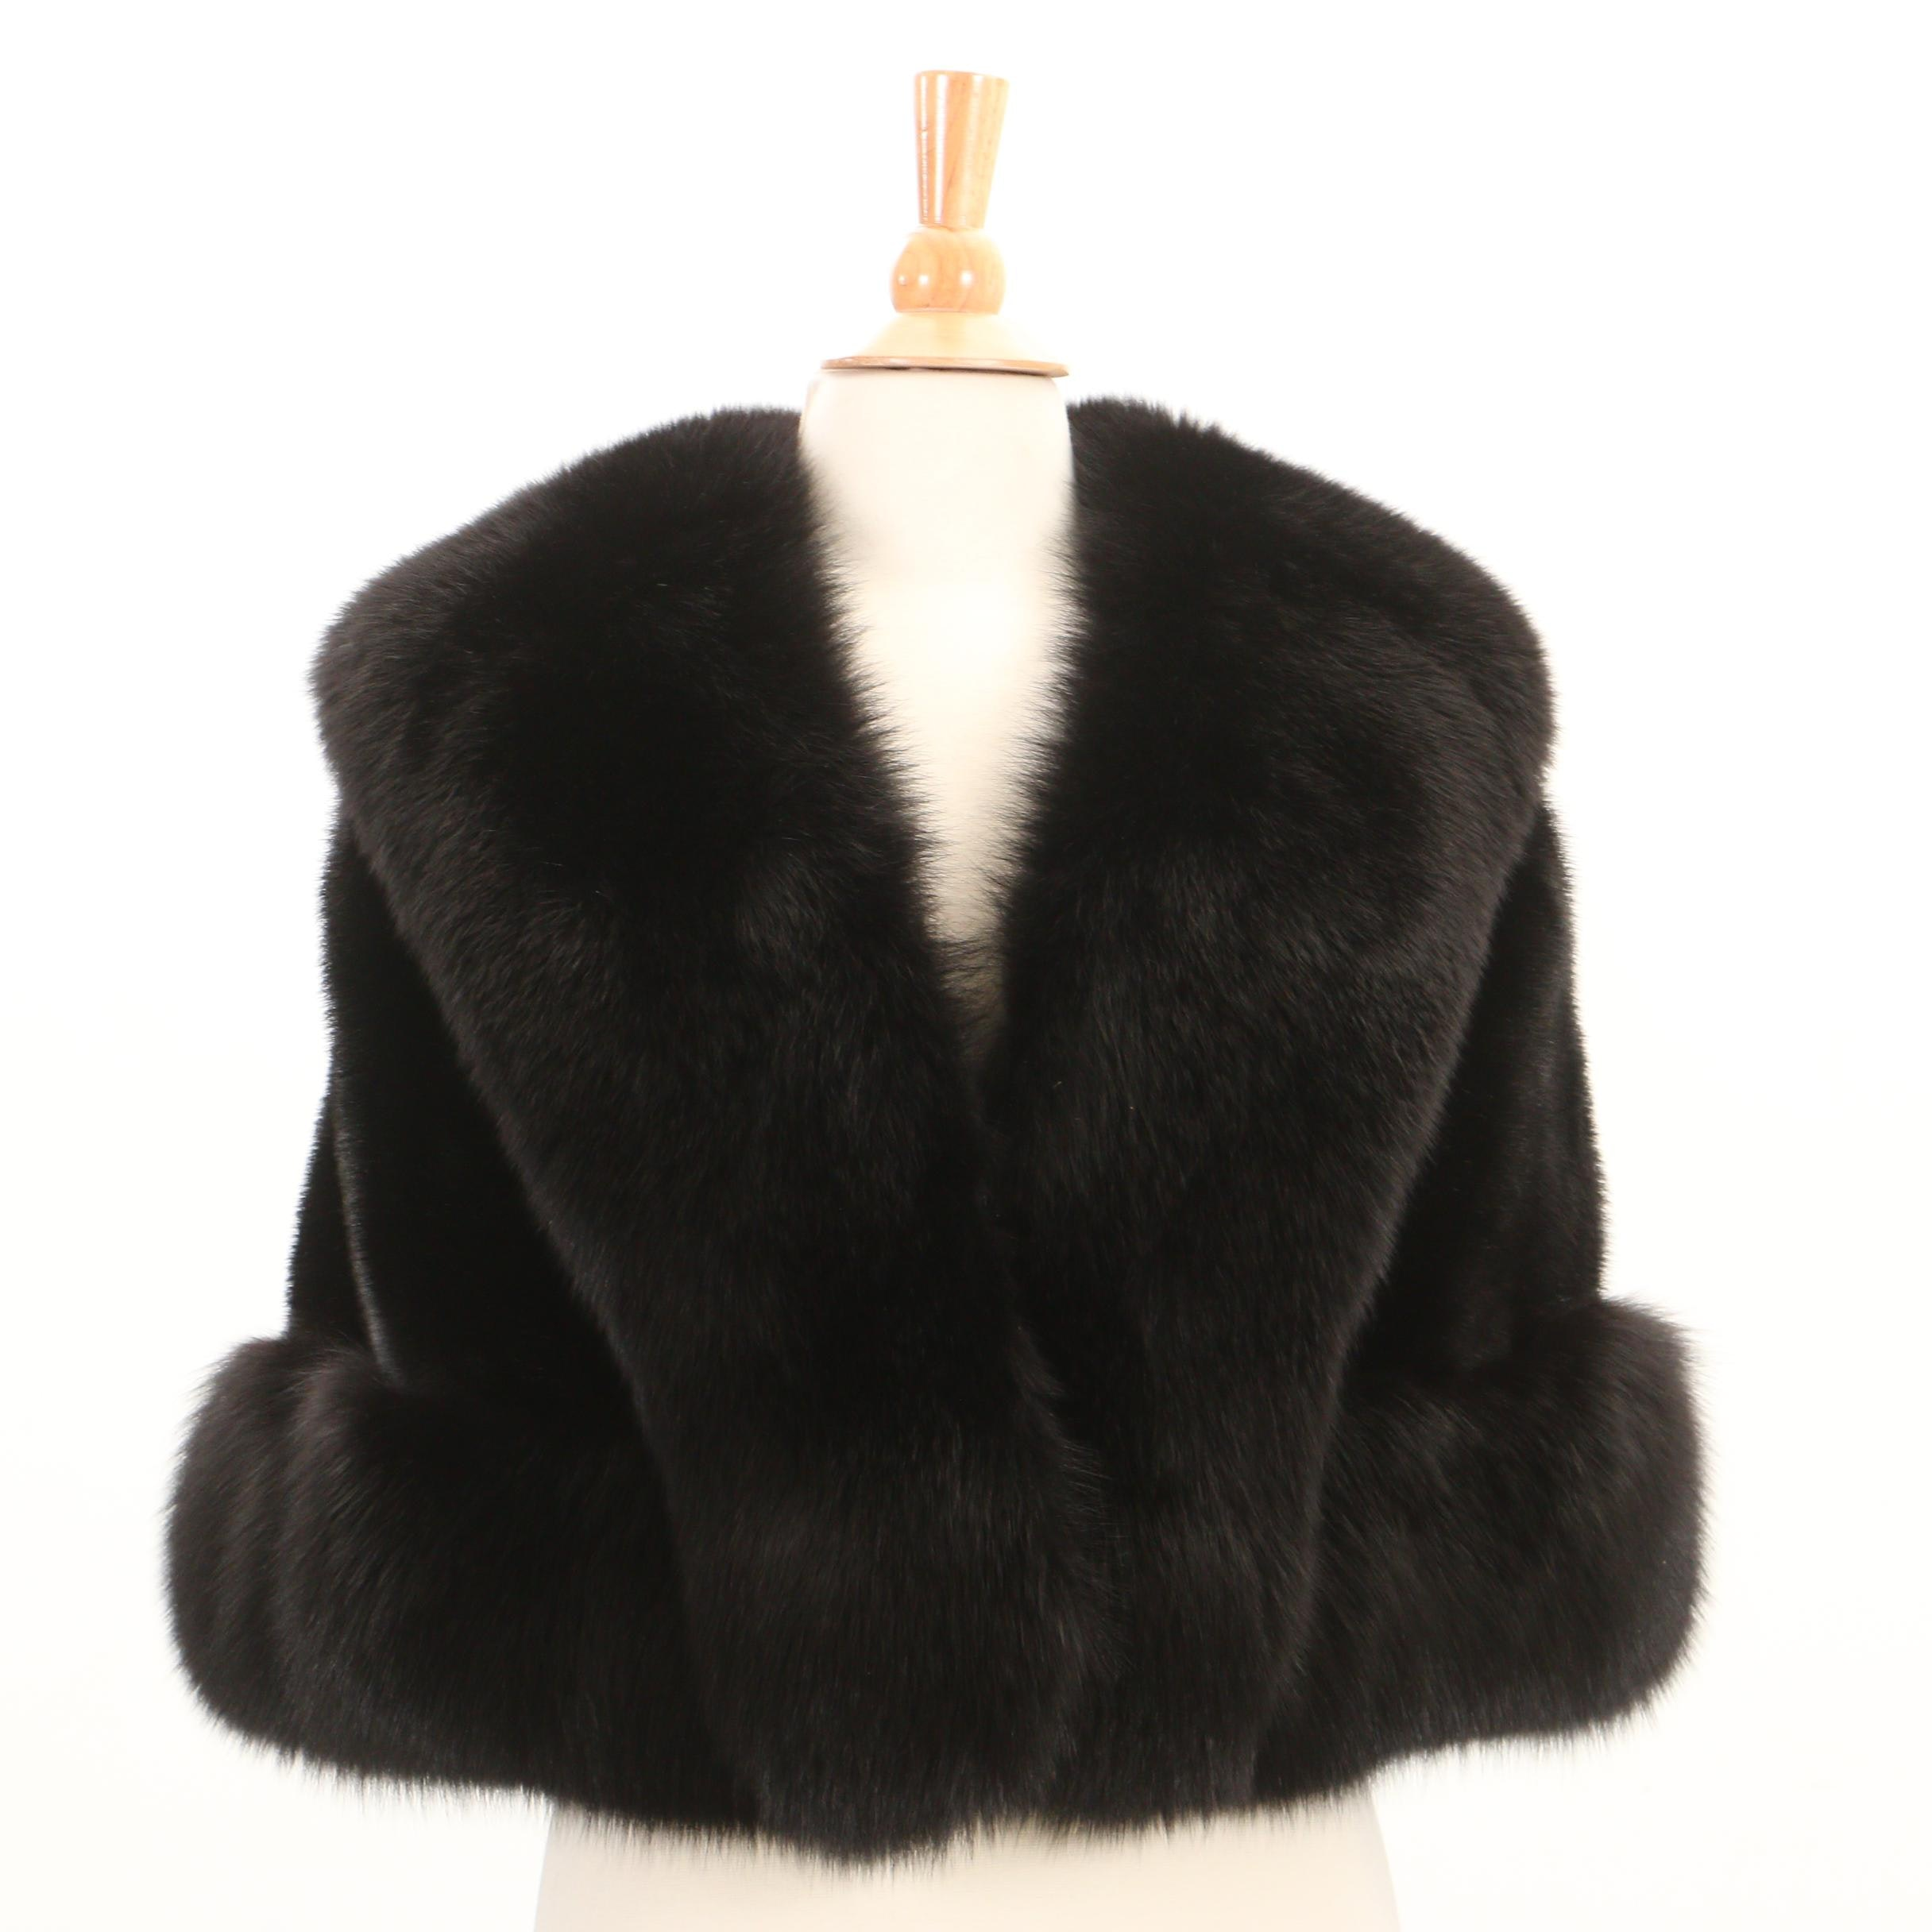 Blackglama Dark Ranch Mink Fur Stole with Fox Fur Trim